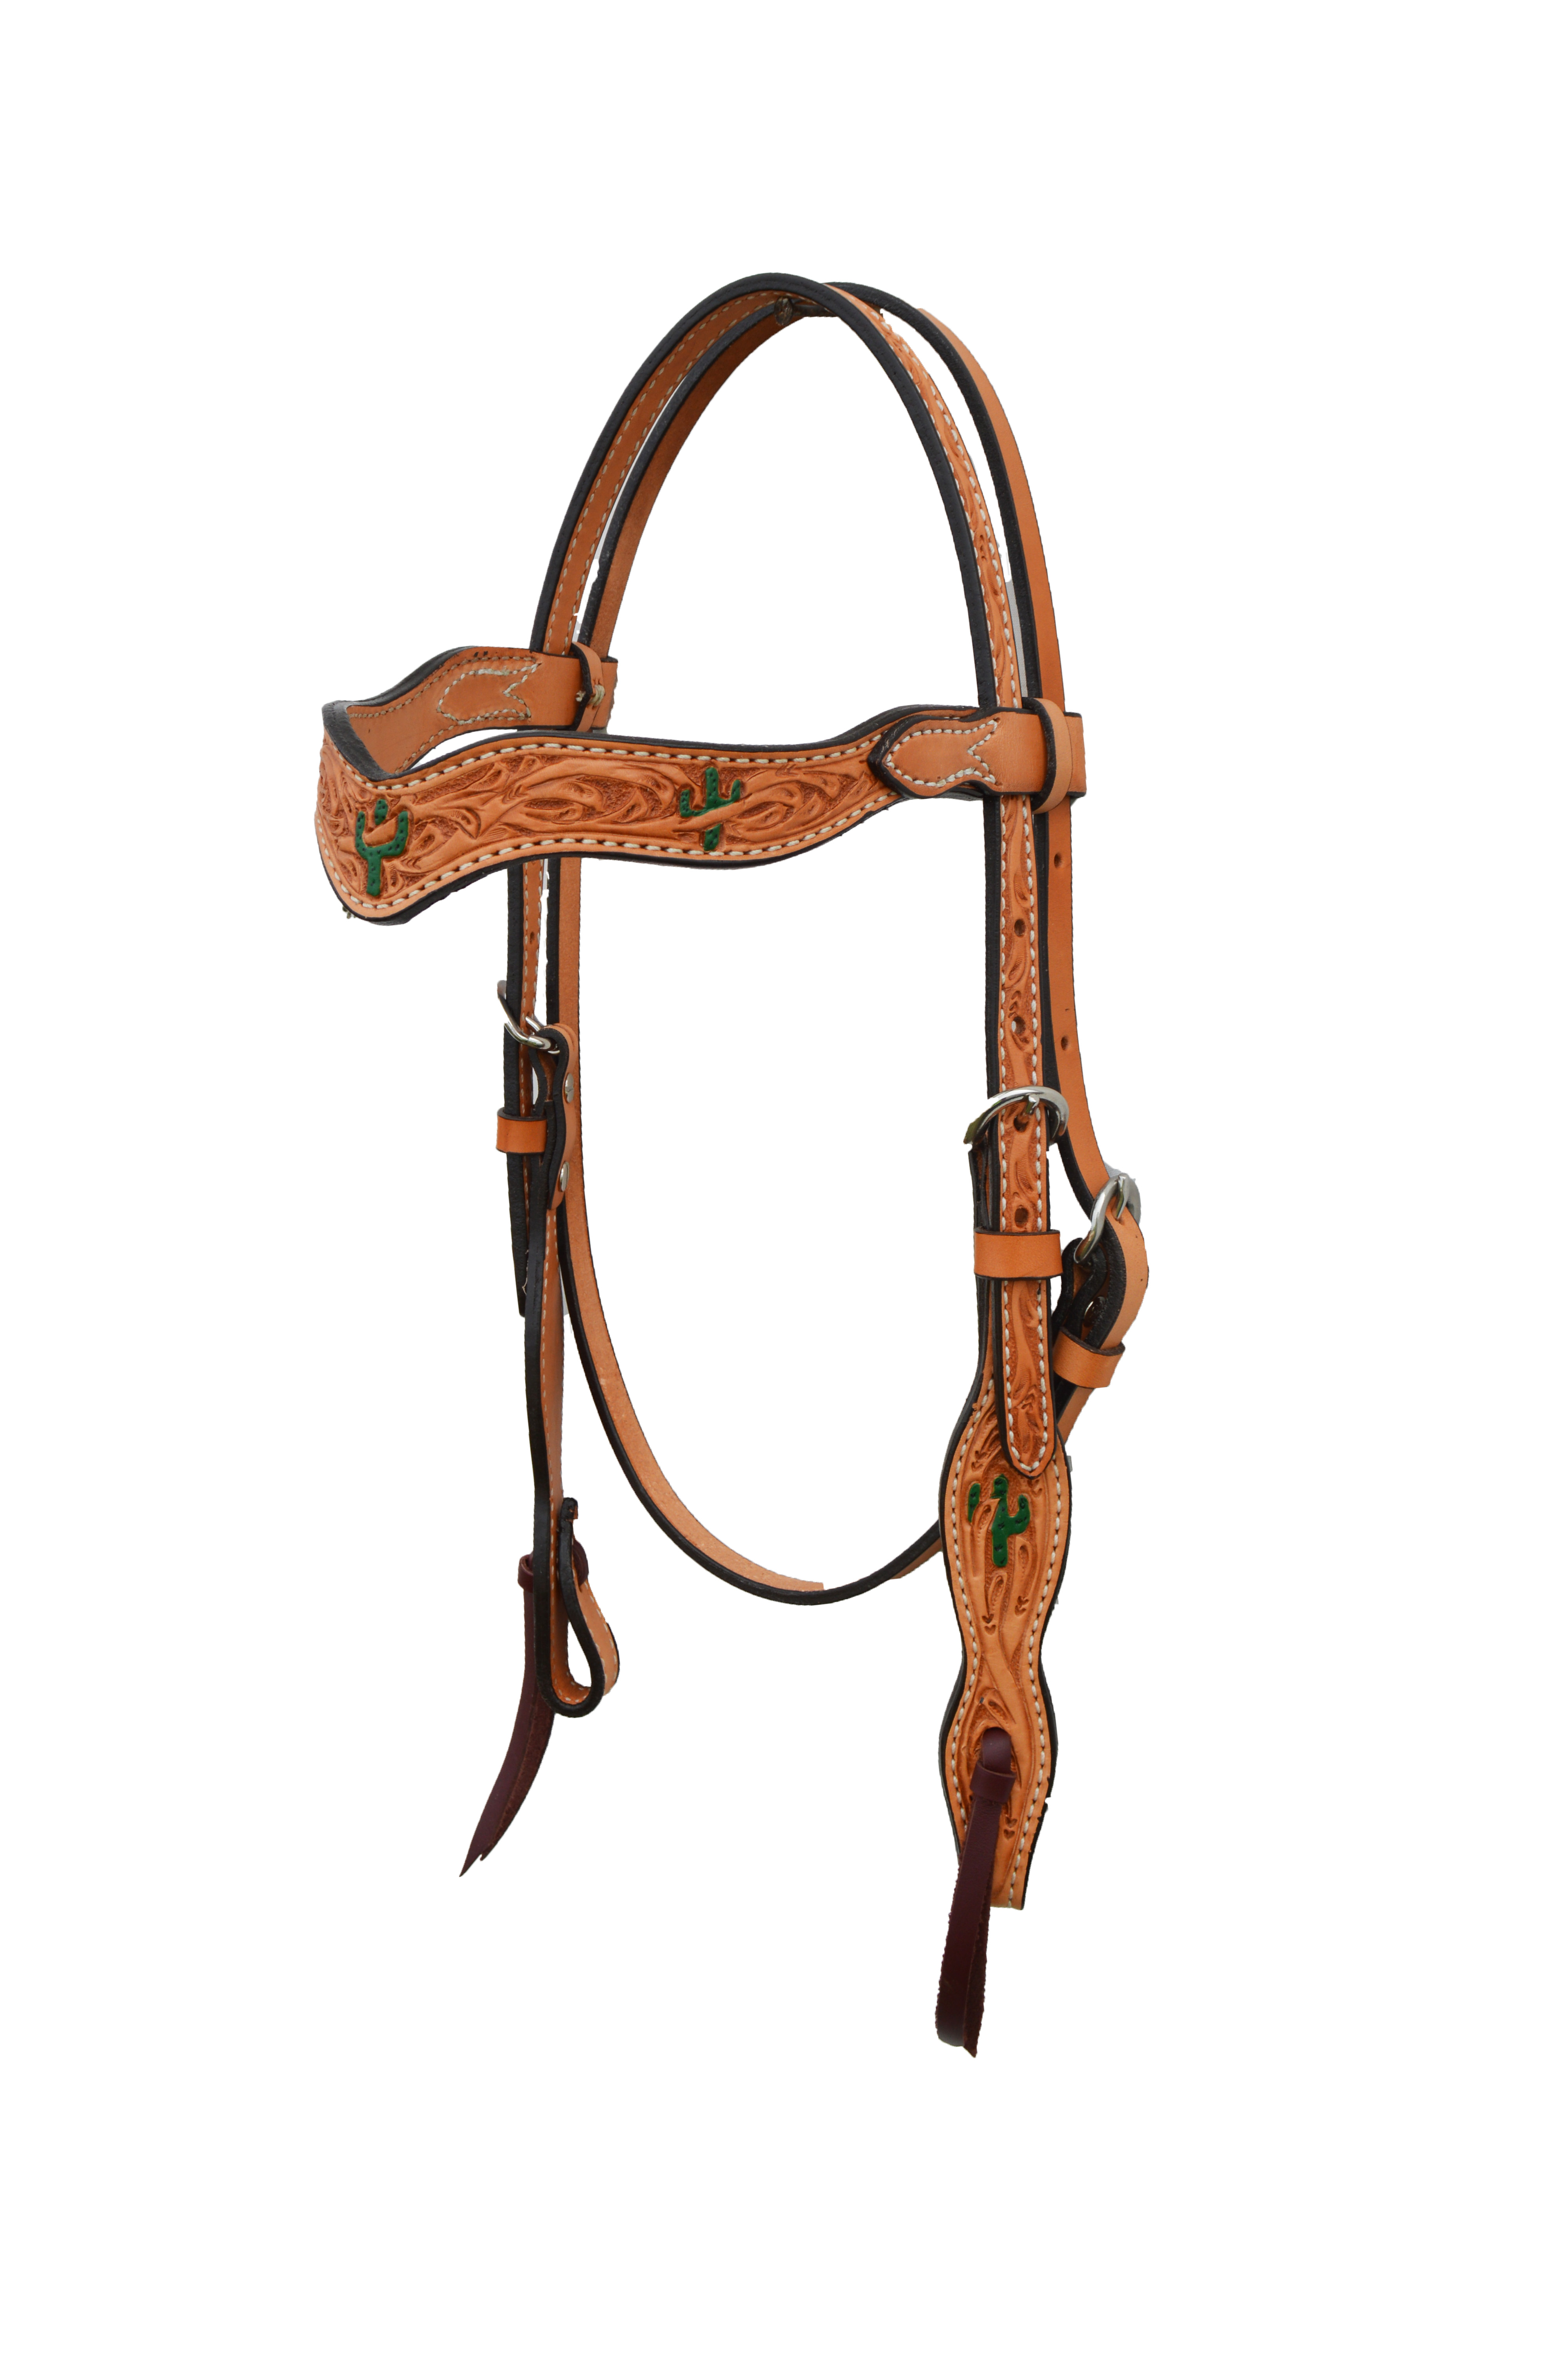 2117-Y Golden wave style headstall with cactus tooling